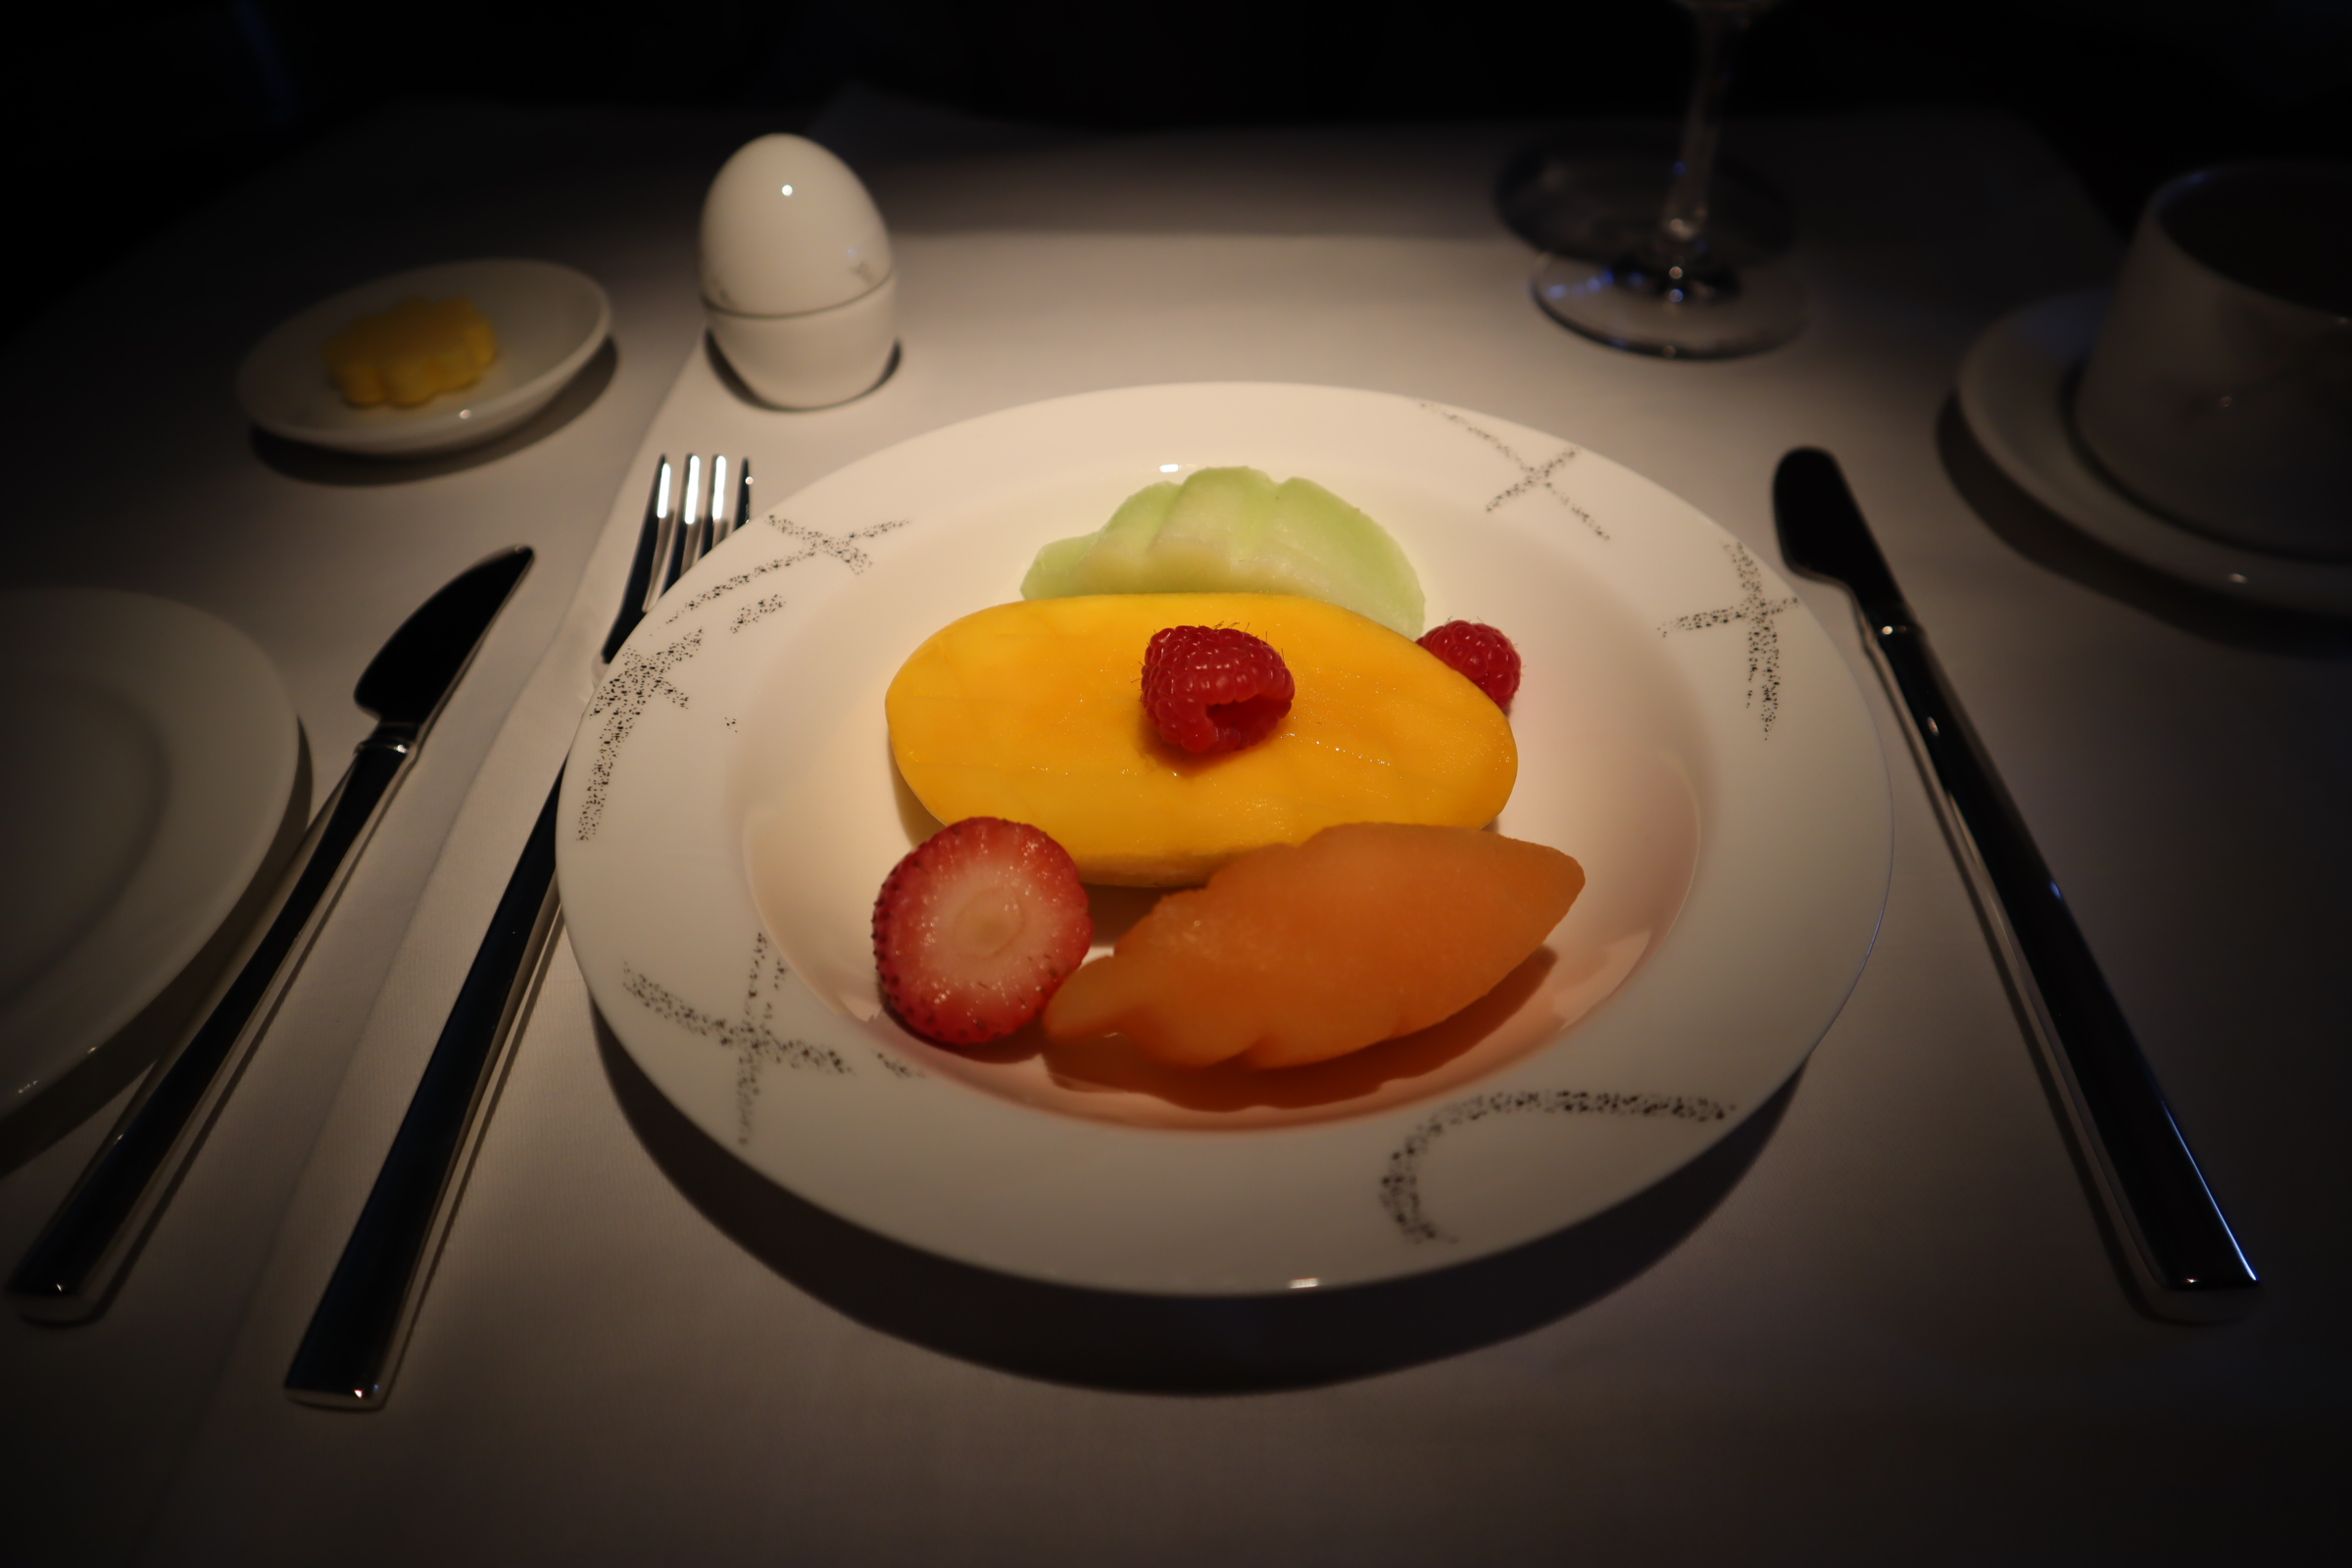 Cathay Pacific First Class – Fruit plate